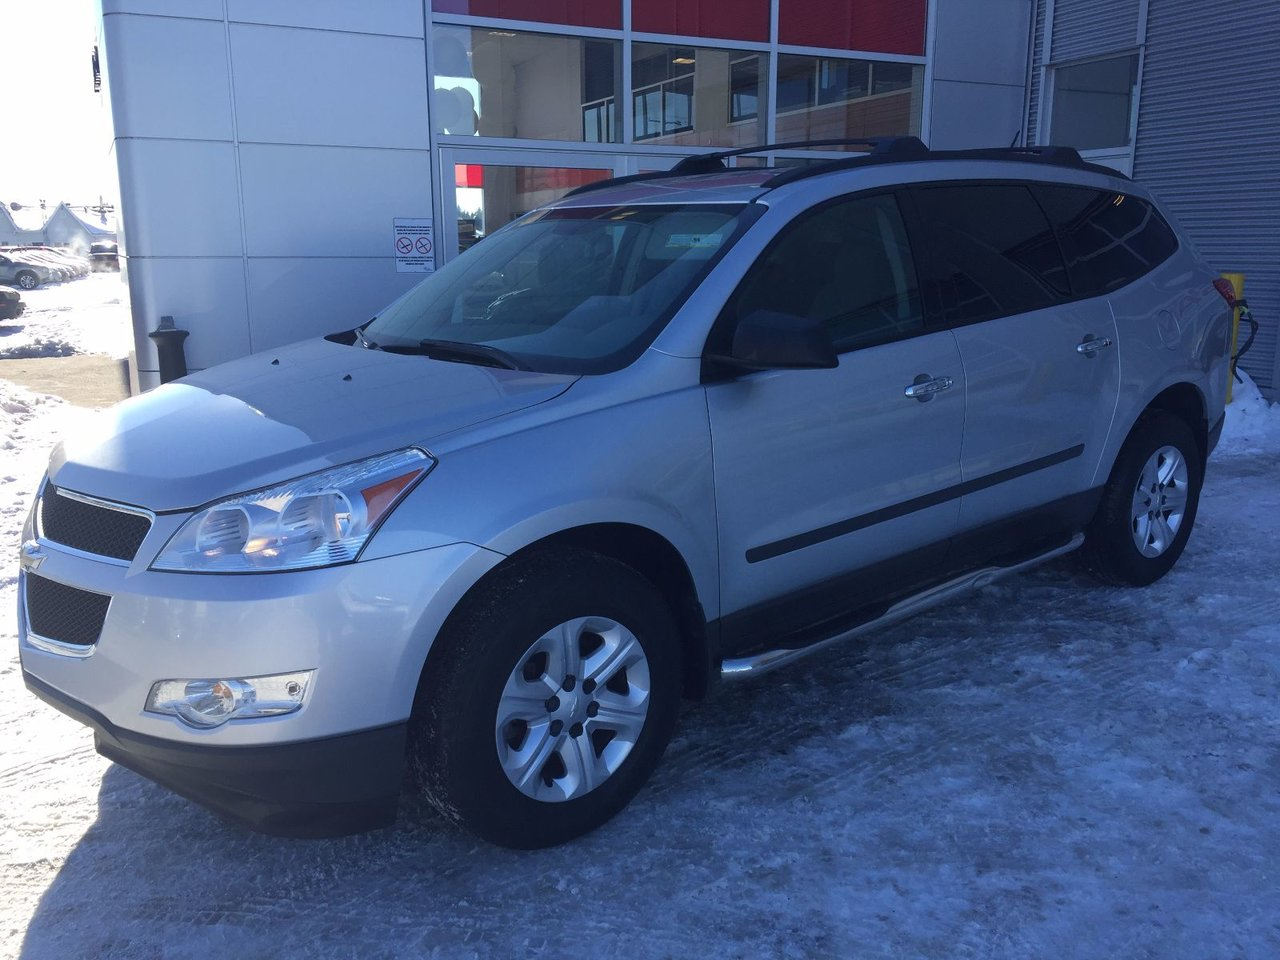 2010 chevrolet traverse 13995 2013 chevrolet traverse 16995. Cars Review. Best American Auto & Cars Review